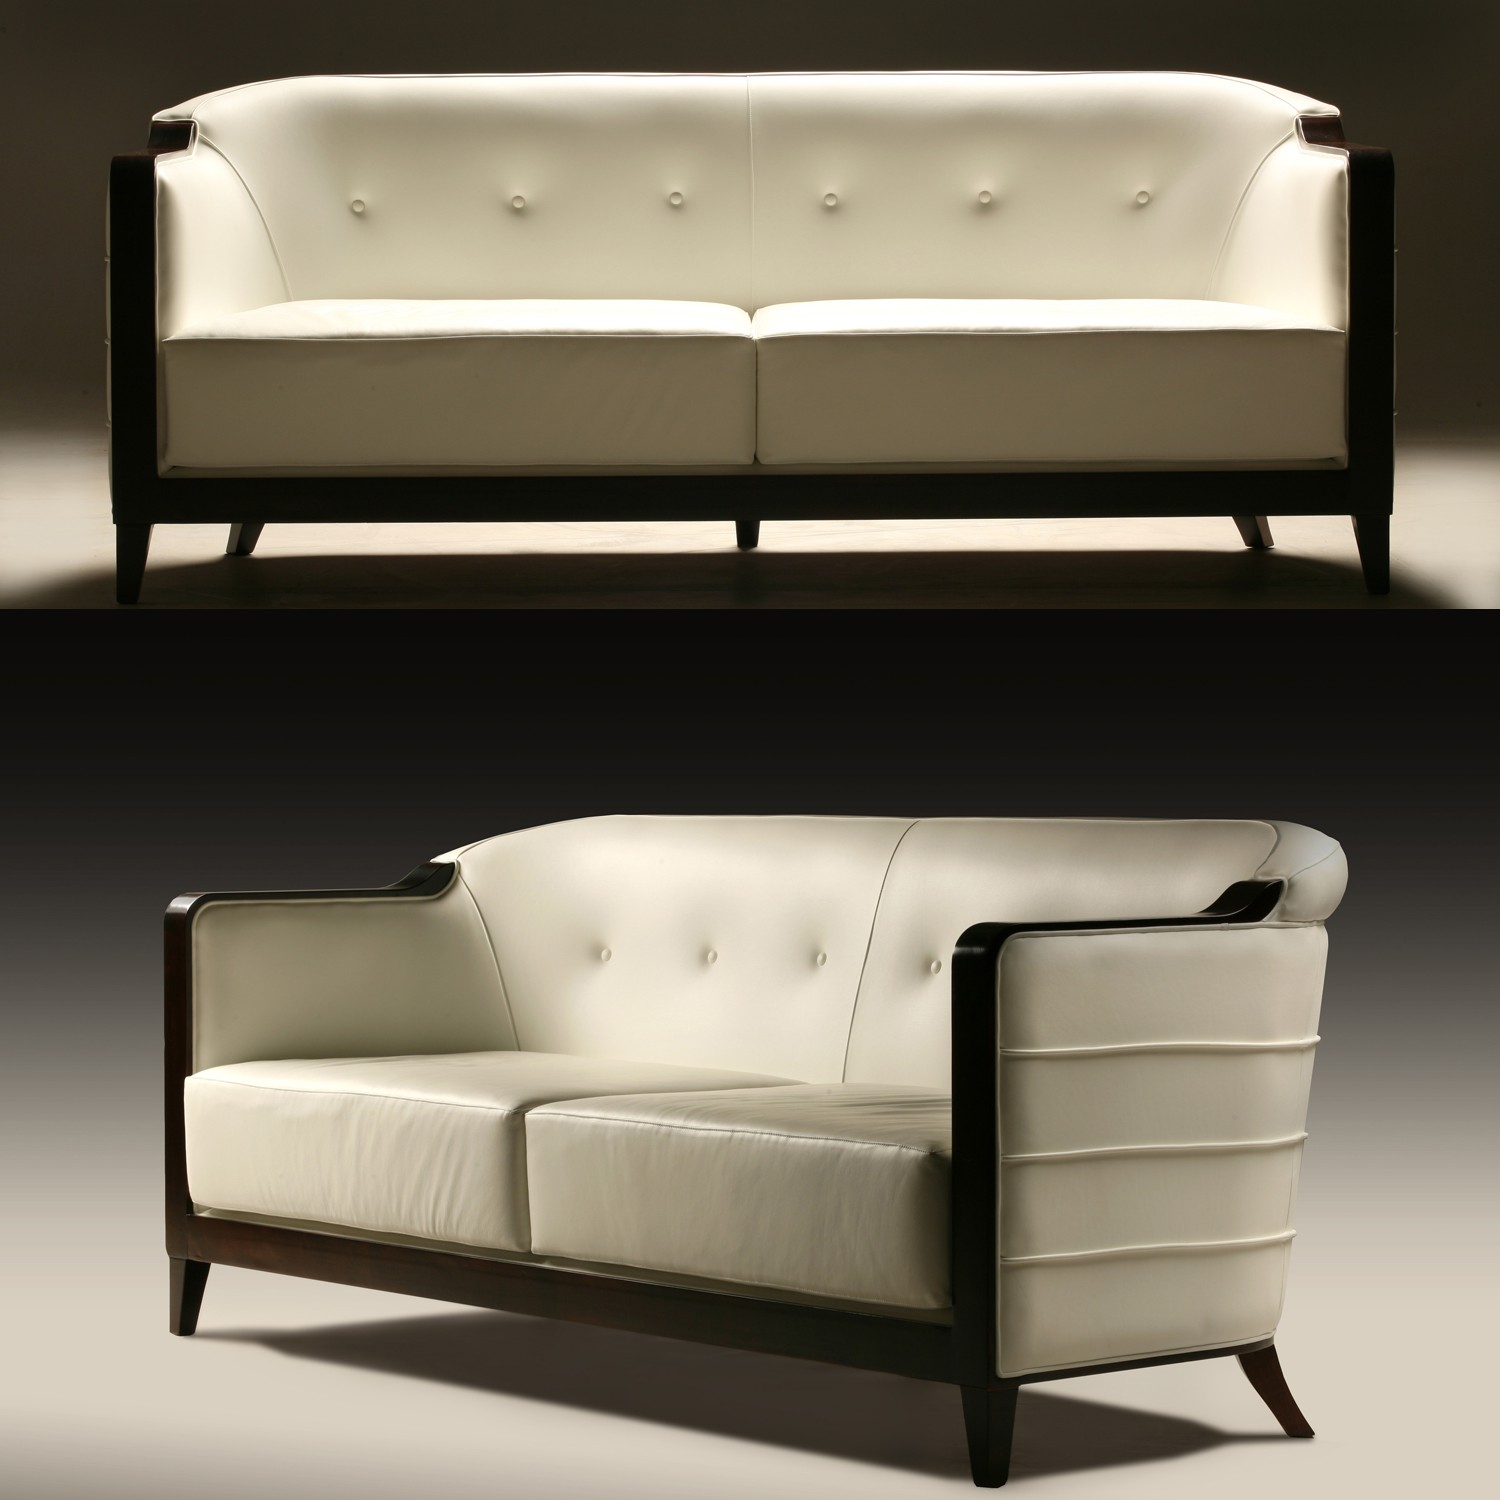 Sofa Milano 2235 Artital Lighting Amp Home Design